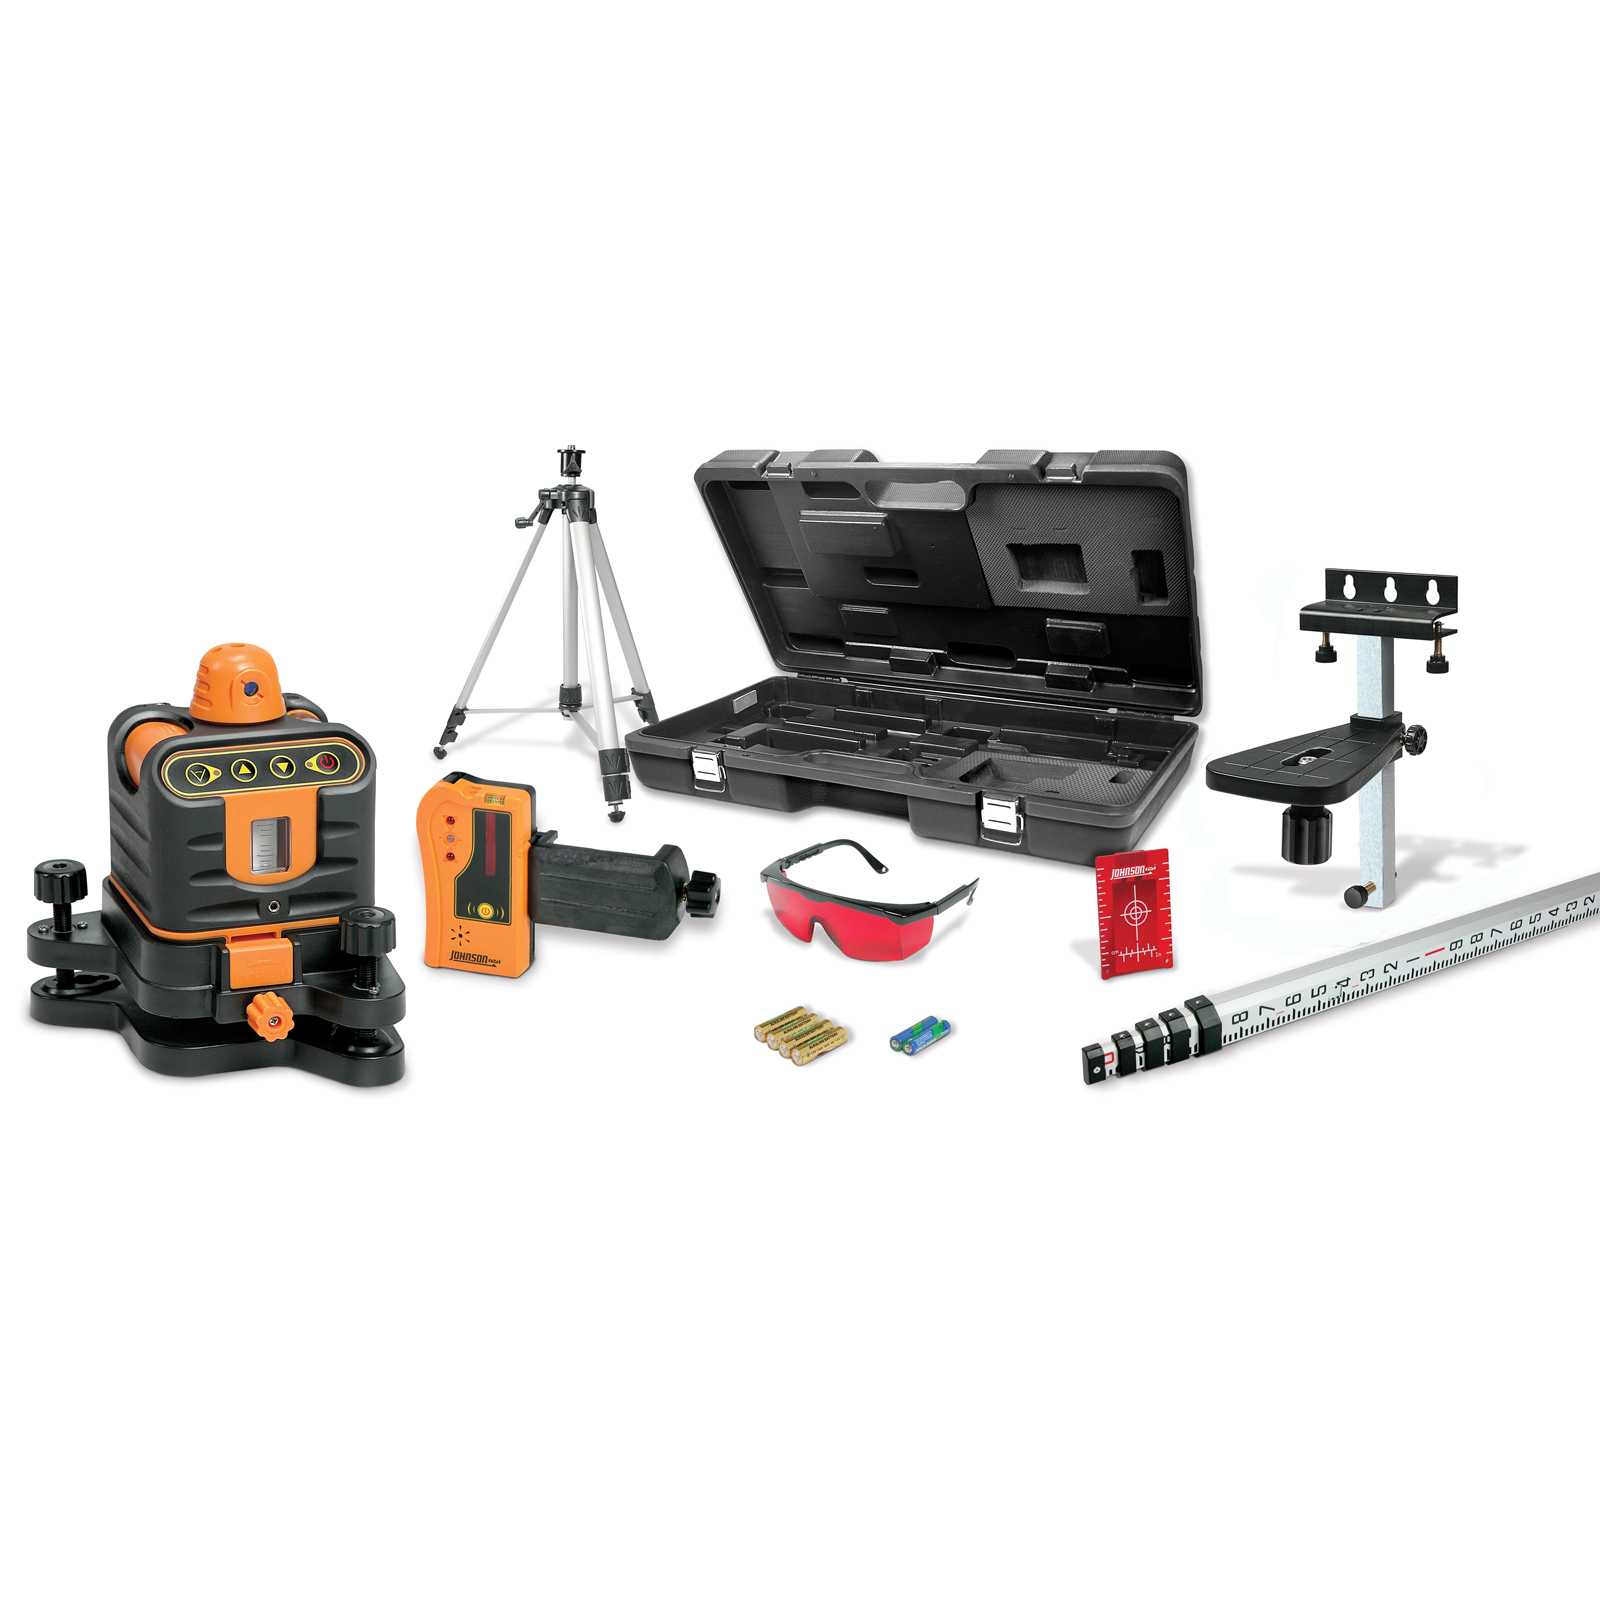 Johnson Level Manual-Leveling Rotary Laser System